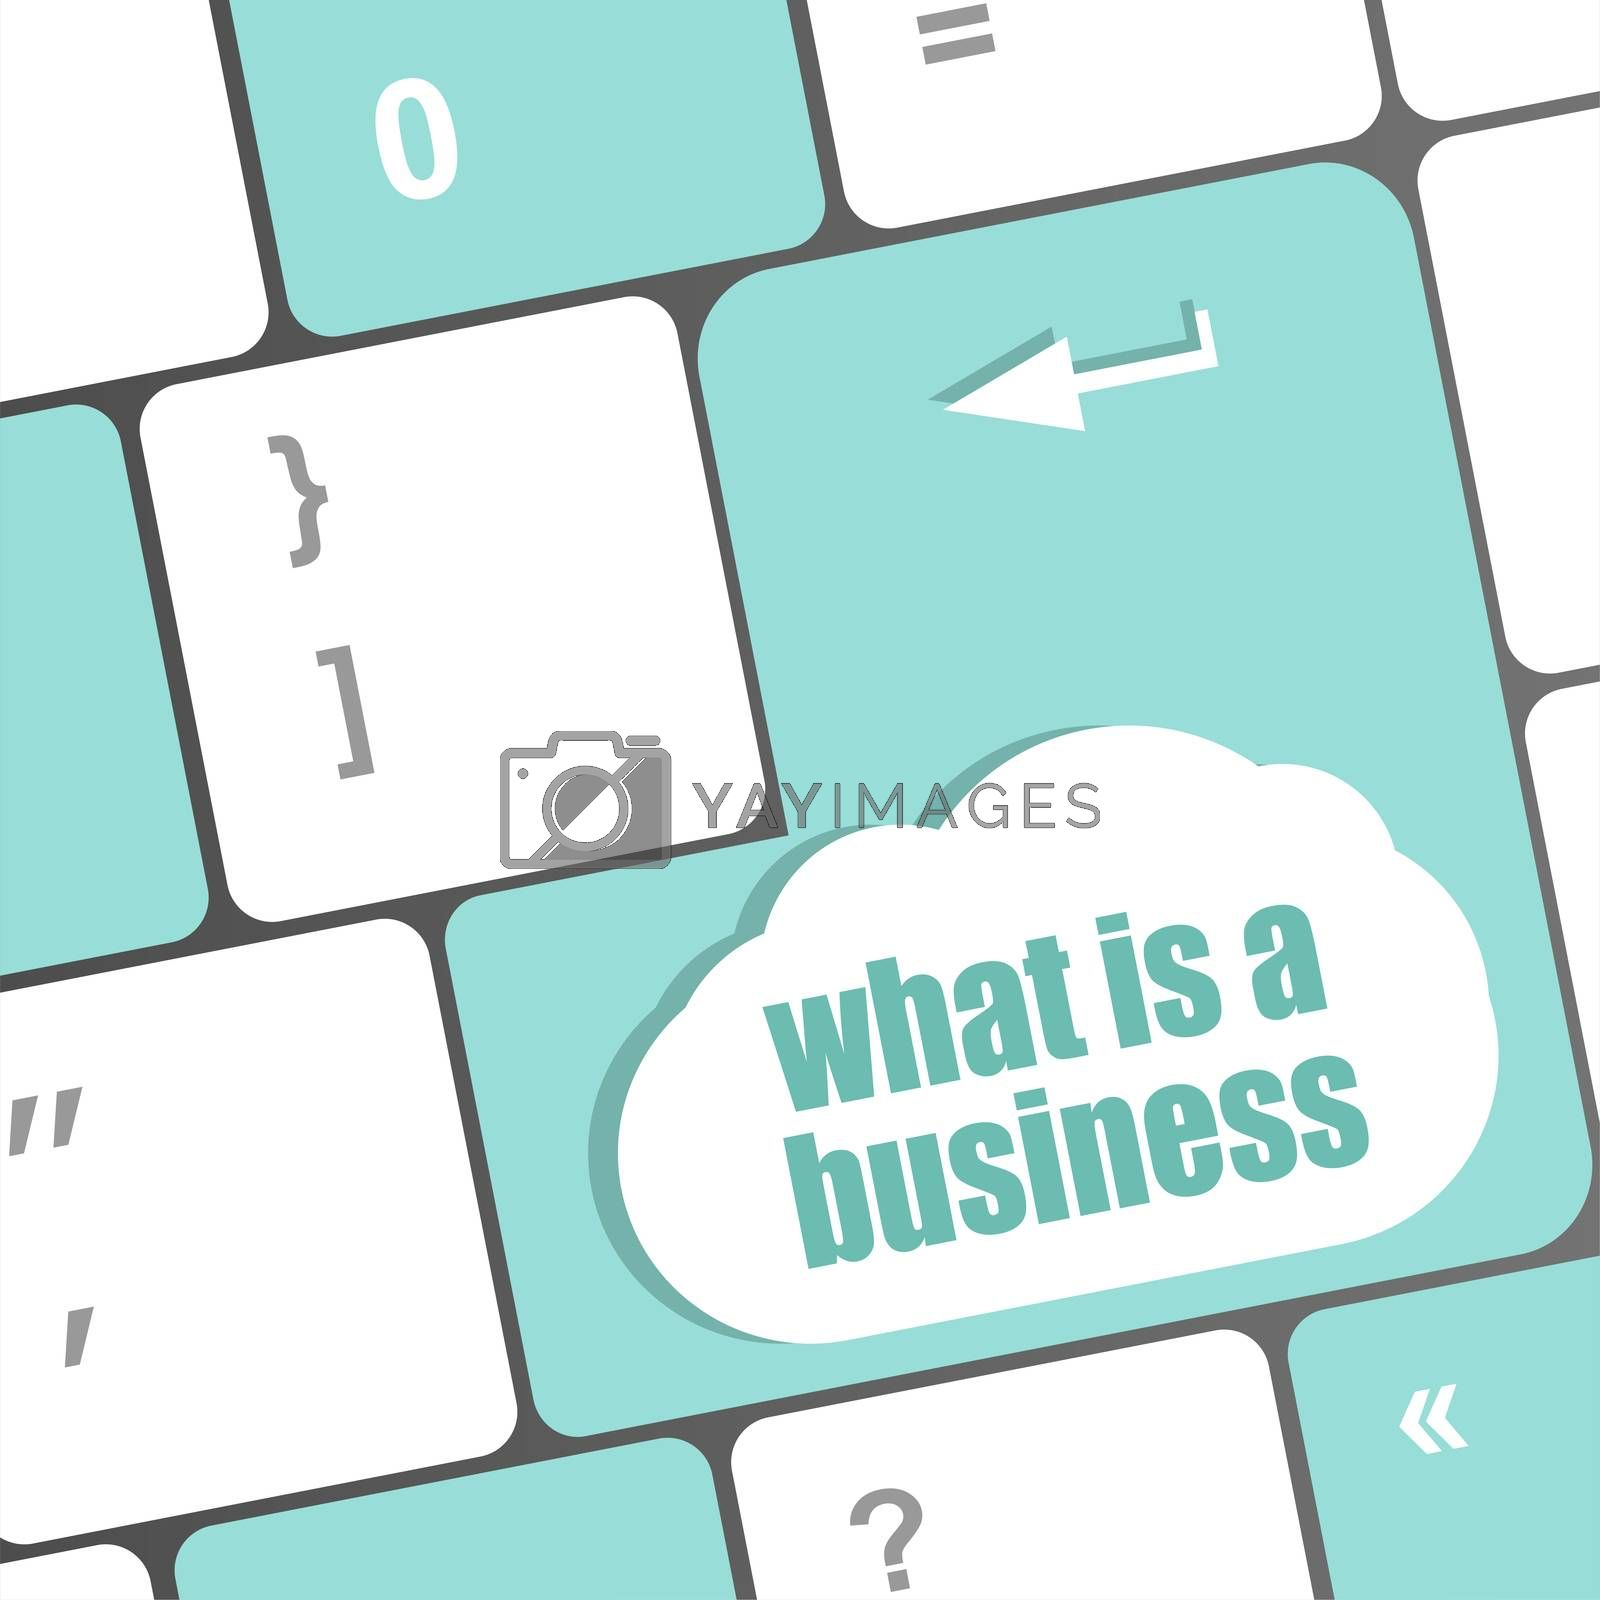 what is business button on computer keyboard key